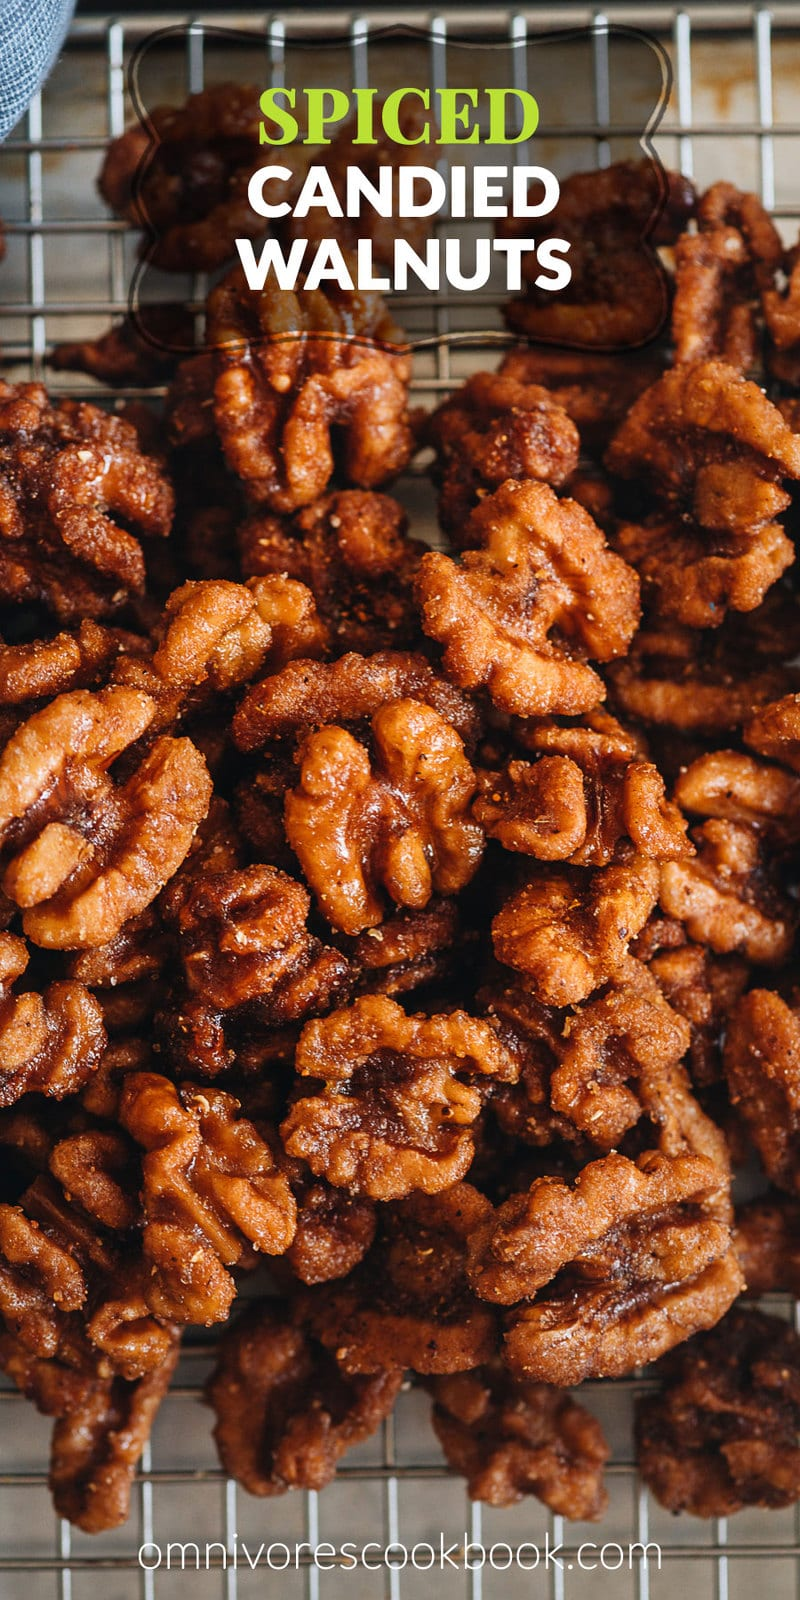 Candied Walnuts with Spice | This candied walnuts recipe yields gorgeously coated sugary, crunchy nuts with a Chinese-inspired spice mix to add a spicy savory touch. They are perfect for holiday gifting, topping on your salad, or simply serving as a snack. Both baking and stovetop methods are included in the recipe. {Vegan, Gluten-Free}